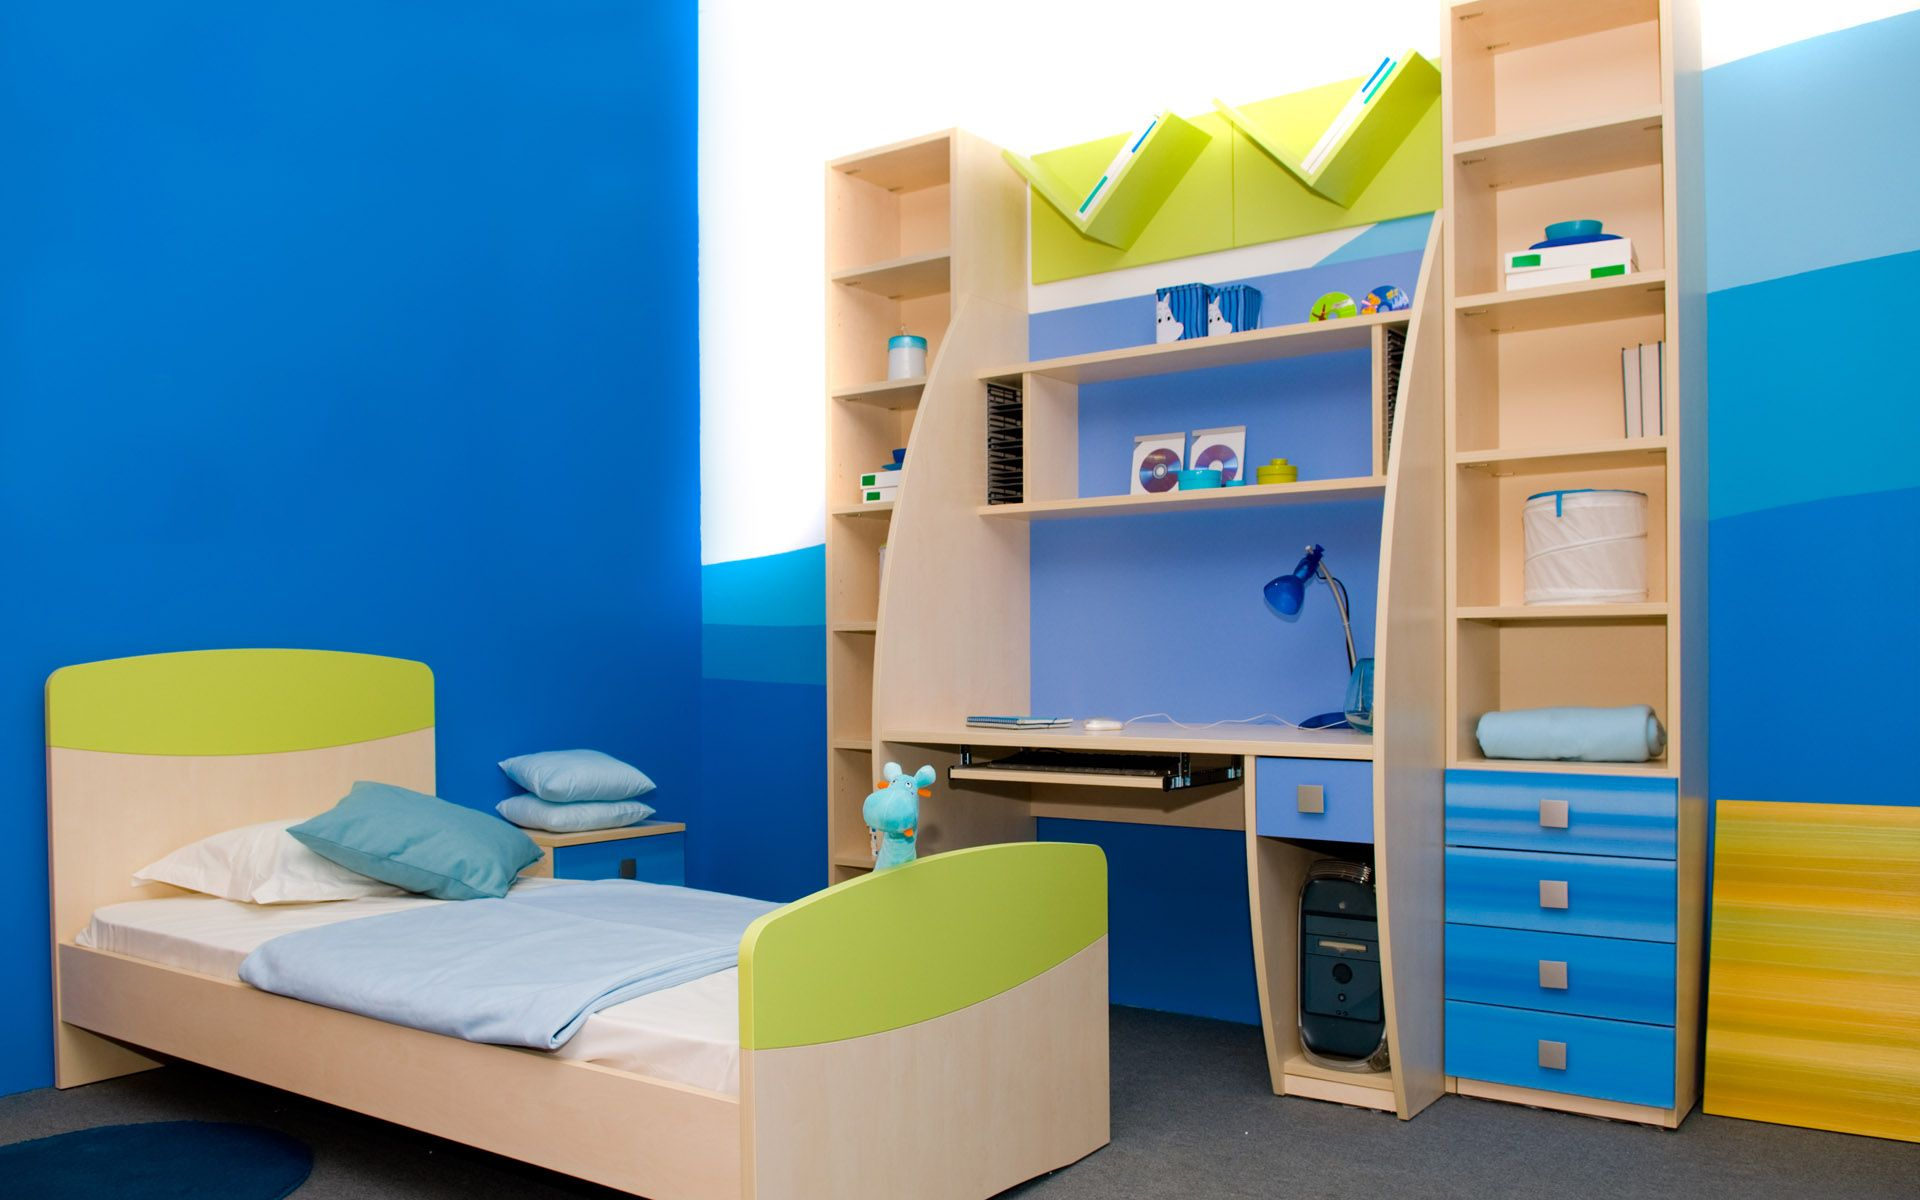 Bedroom interior for boys - Bedrooms Flooring For Kids Rooms Interior